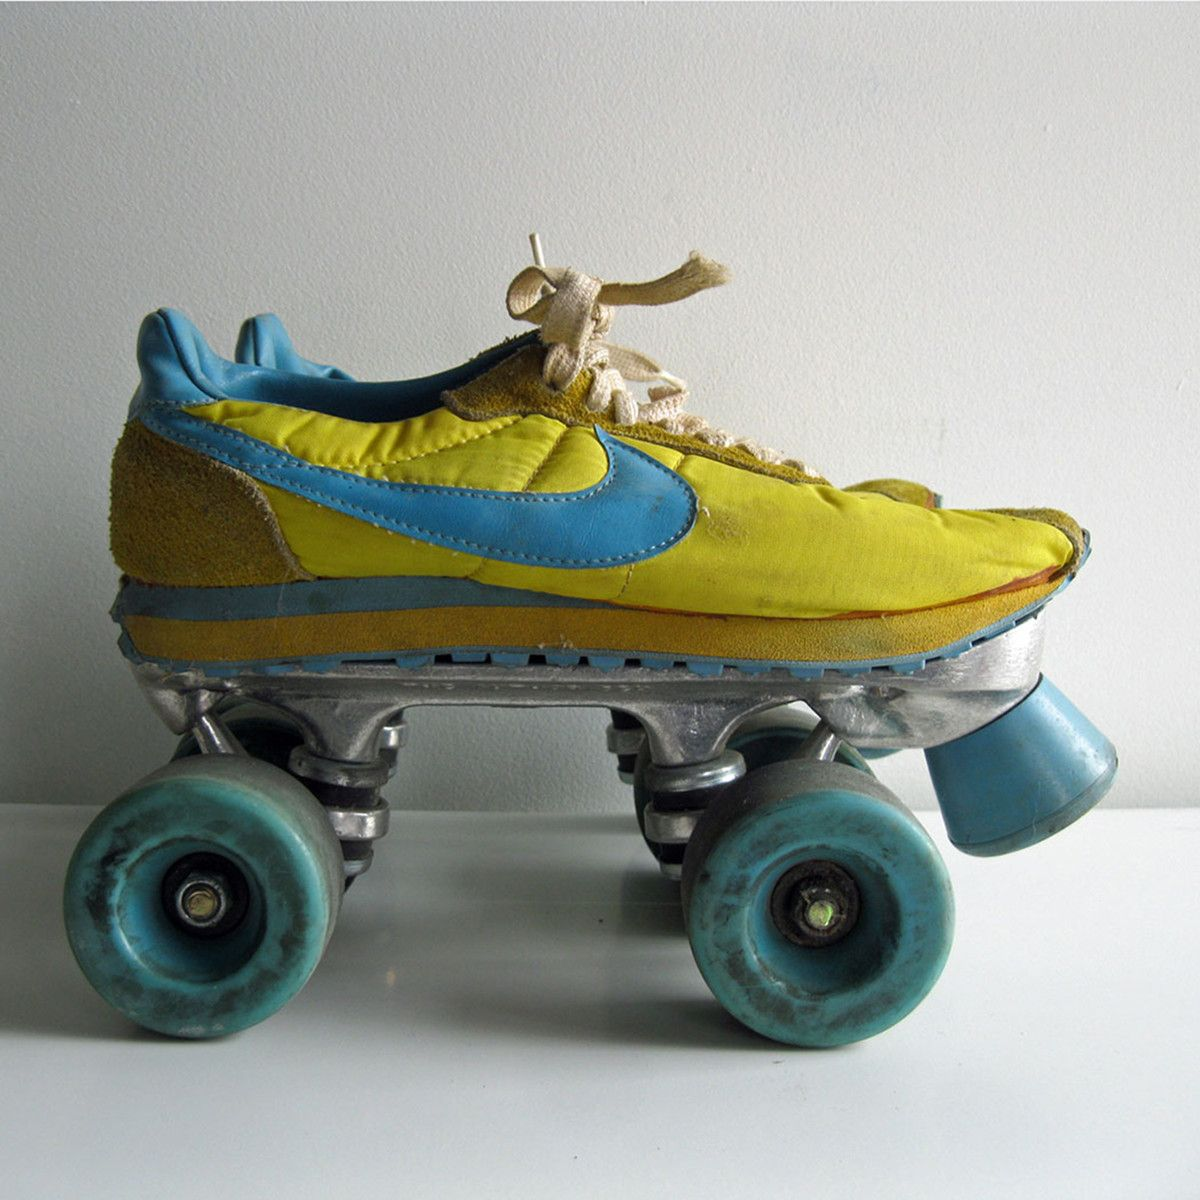 1970s Nike Sneaker Roller Skates...i had some generic form of these weird skates